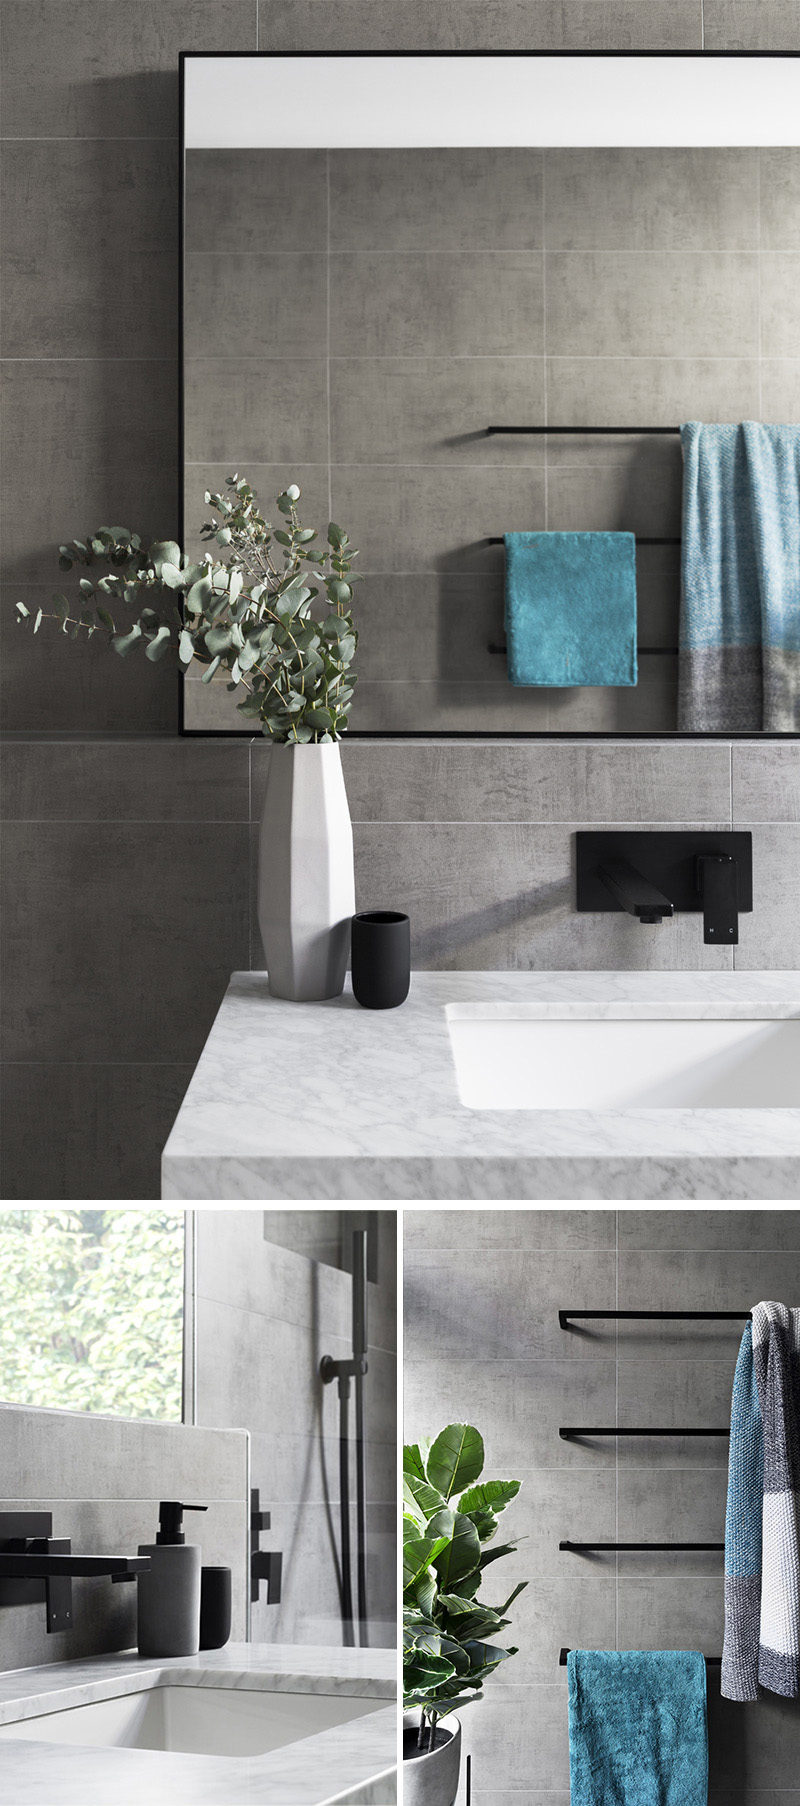 In this modern grey and white bathroom, matte black accents like the hardware, towel bars, soap dispenser, and toothbrush holders add a sophistication to the bathroom, while the touches of blue in the towels and green in the plant add a pop of color to the otherwise neutral space.